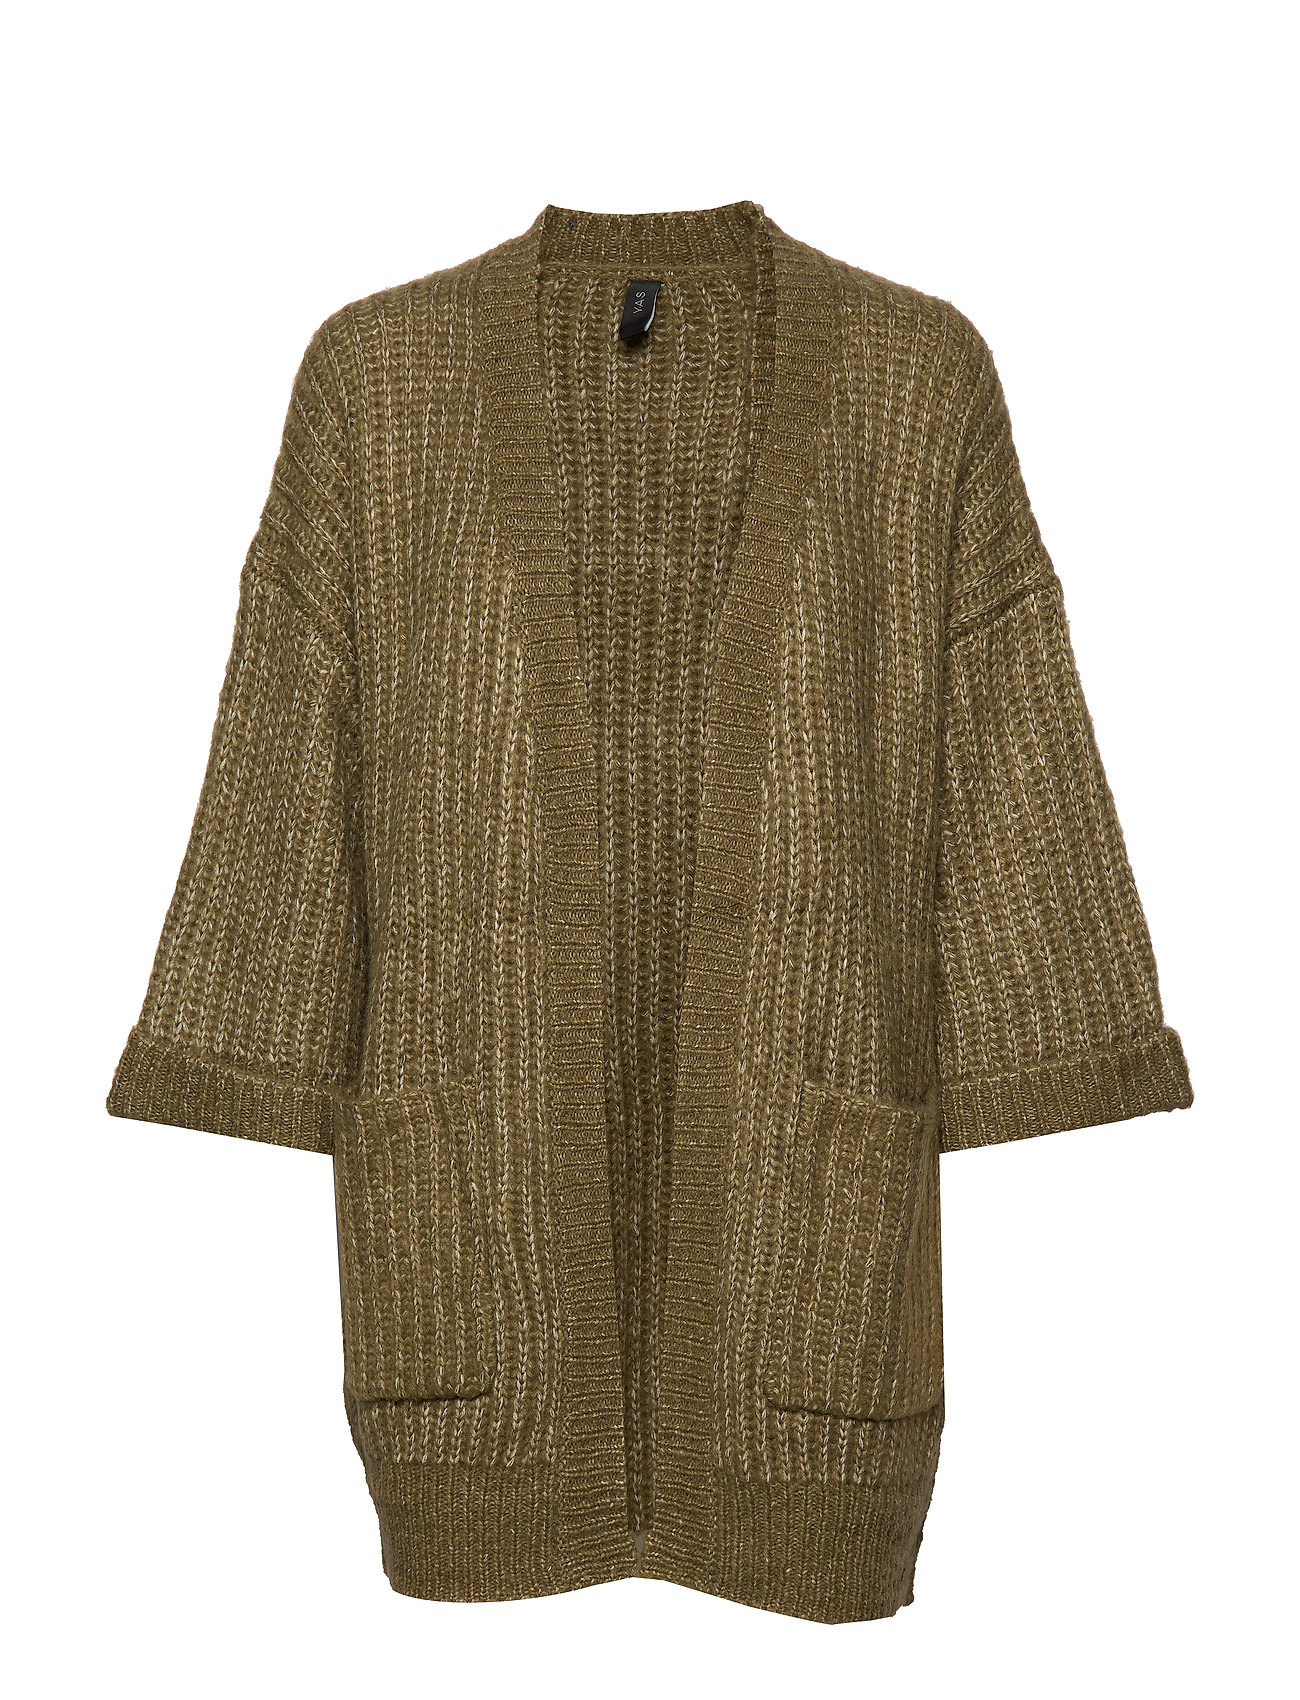 YAS YASSUNDAY KNIT CARDIGAN - MILITARY OLIVE